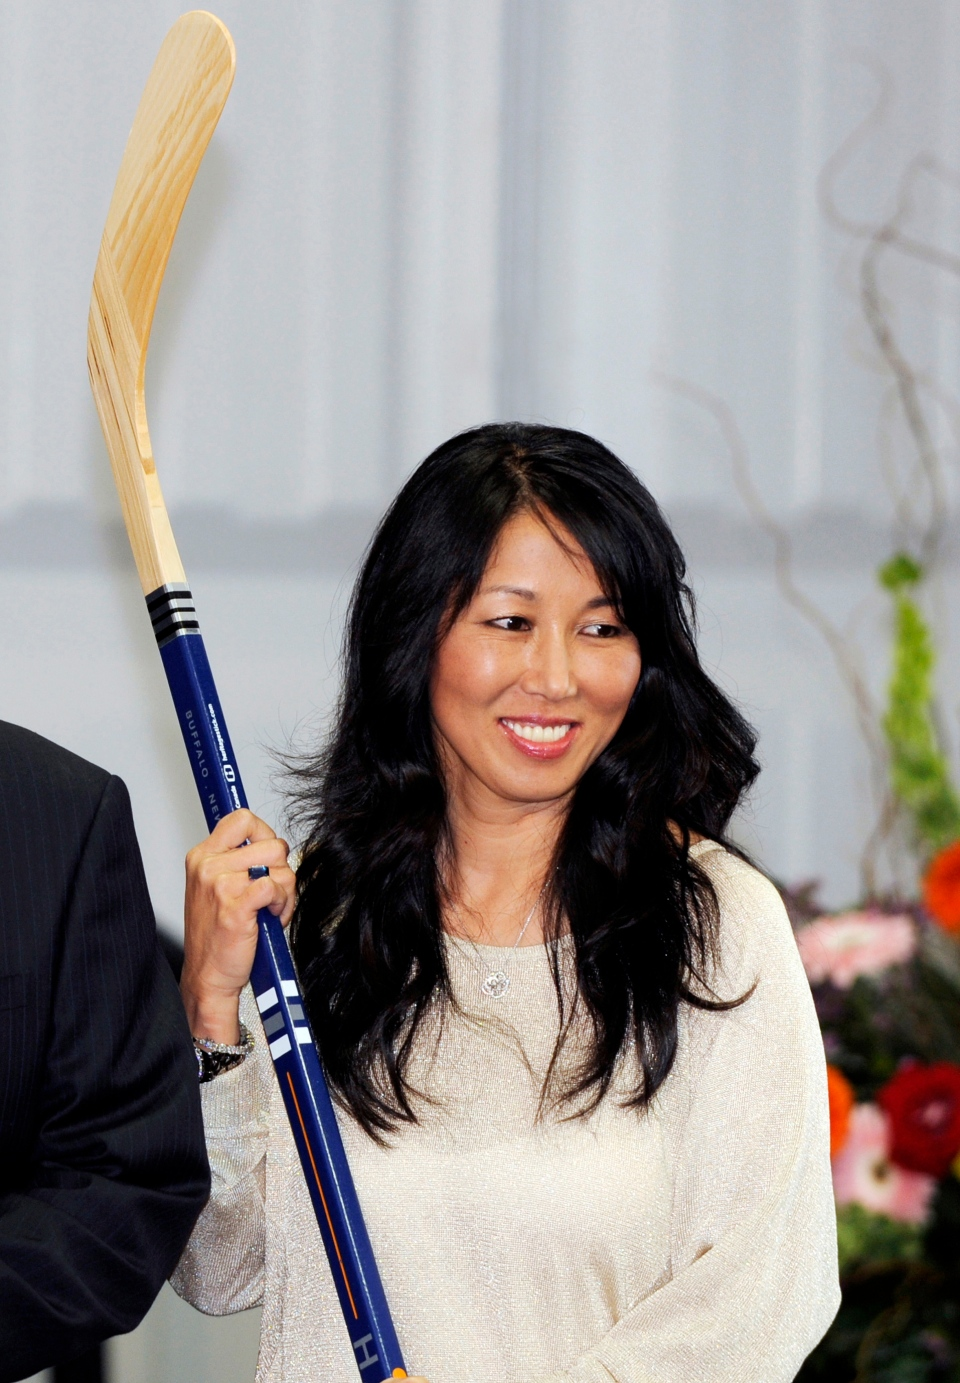 In this April 13, 2013, file photo, Kim Pegula poses during groundbreaking ceremonies at First Niagara Center in Buffalo, N.Y. The NHL is finally shrugging off its reputation as being a `men-only,' club with the Maple Leafs hiring Hayley Wickenheiser to a player development role, and Kim Pegula taking over as president of the Buffalo Sabres. (AP Photo/Gary Wiepert, File)